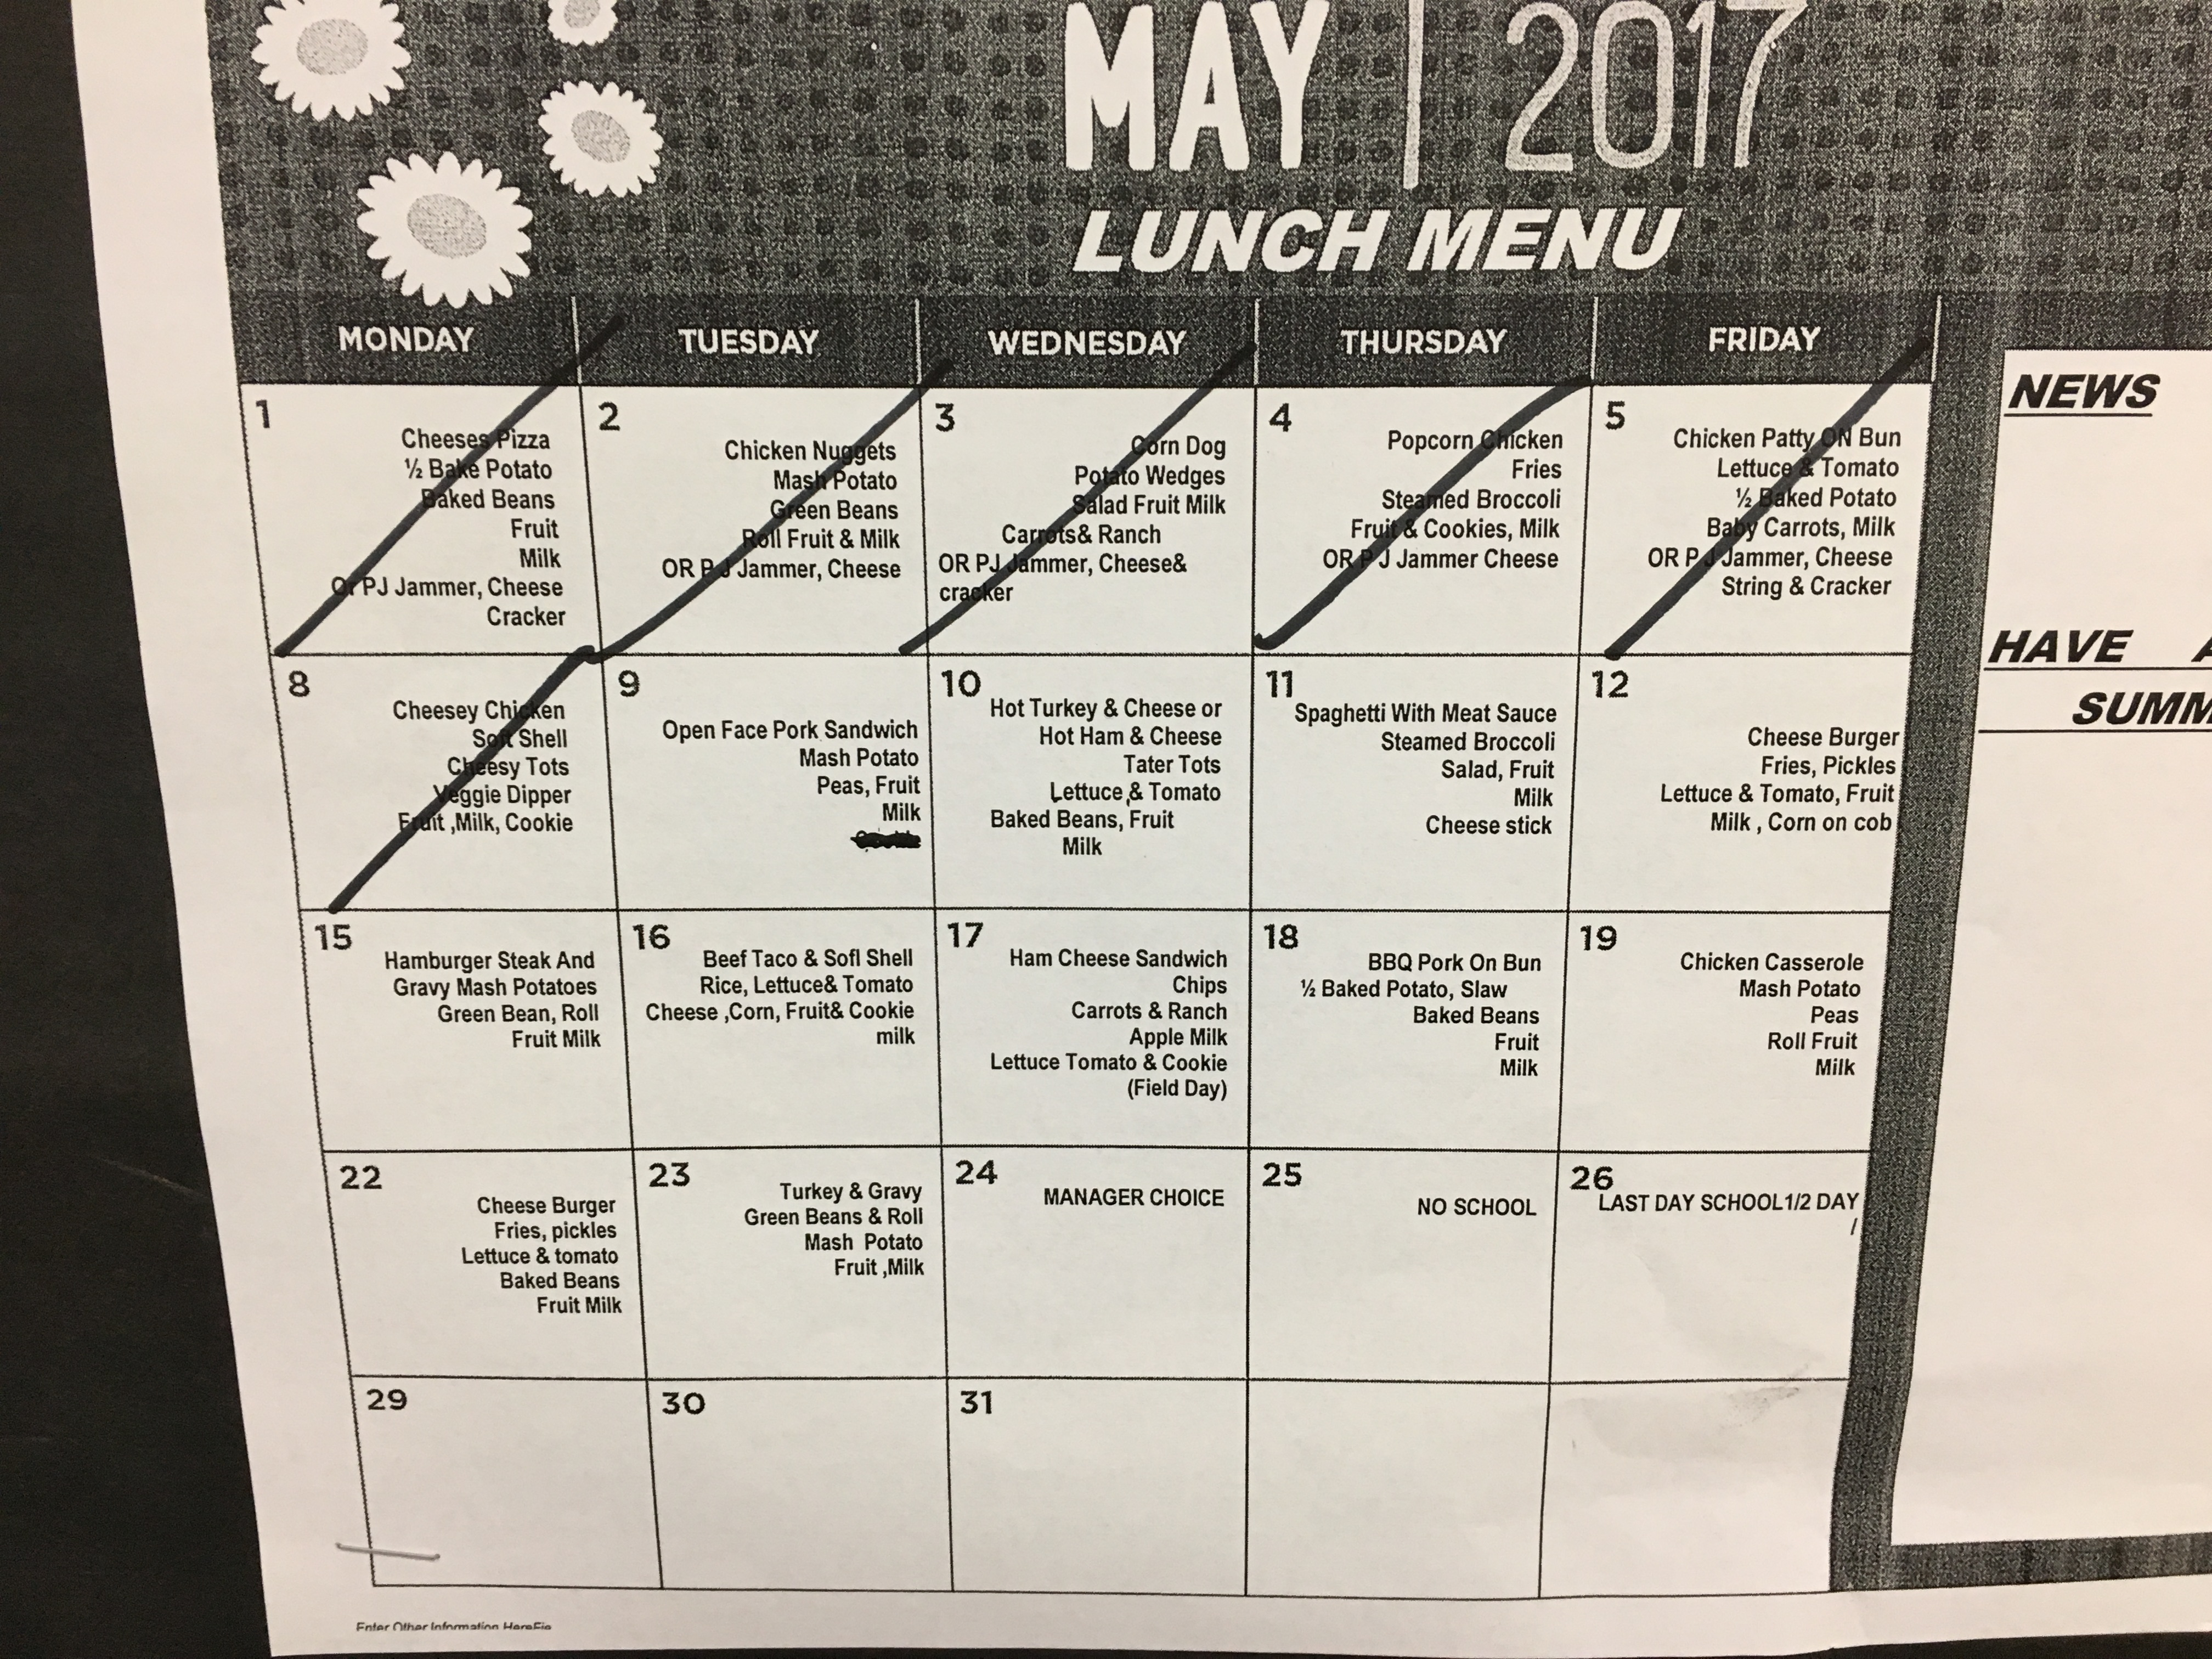 MAY LUNCH